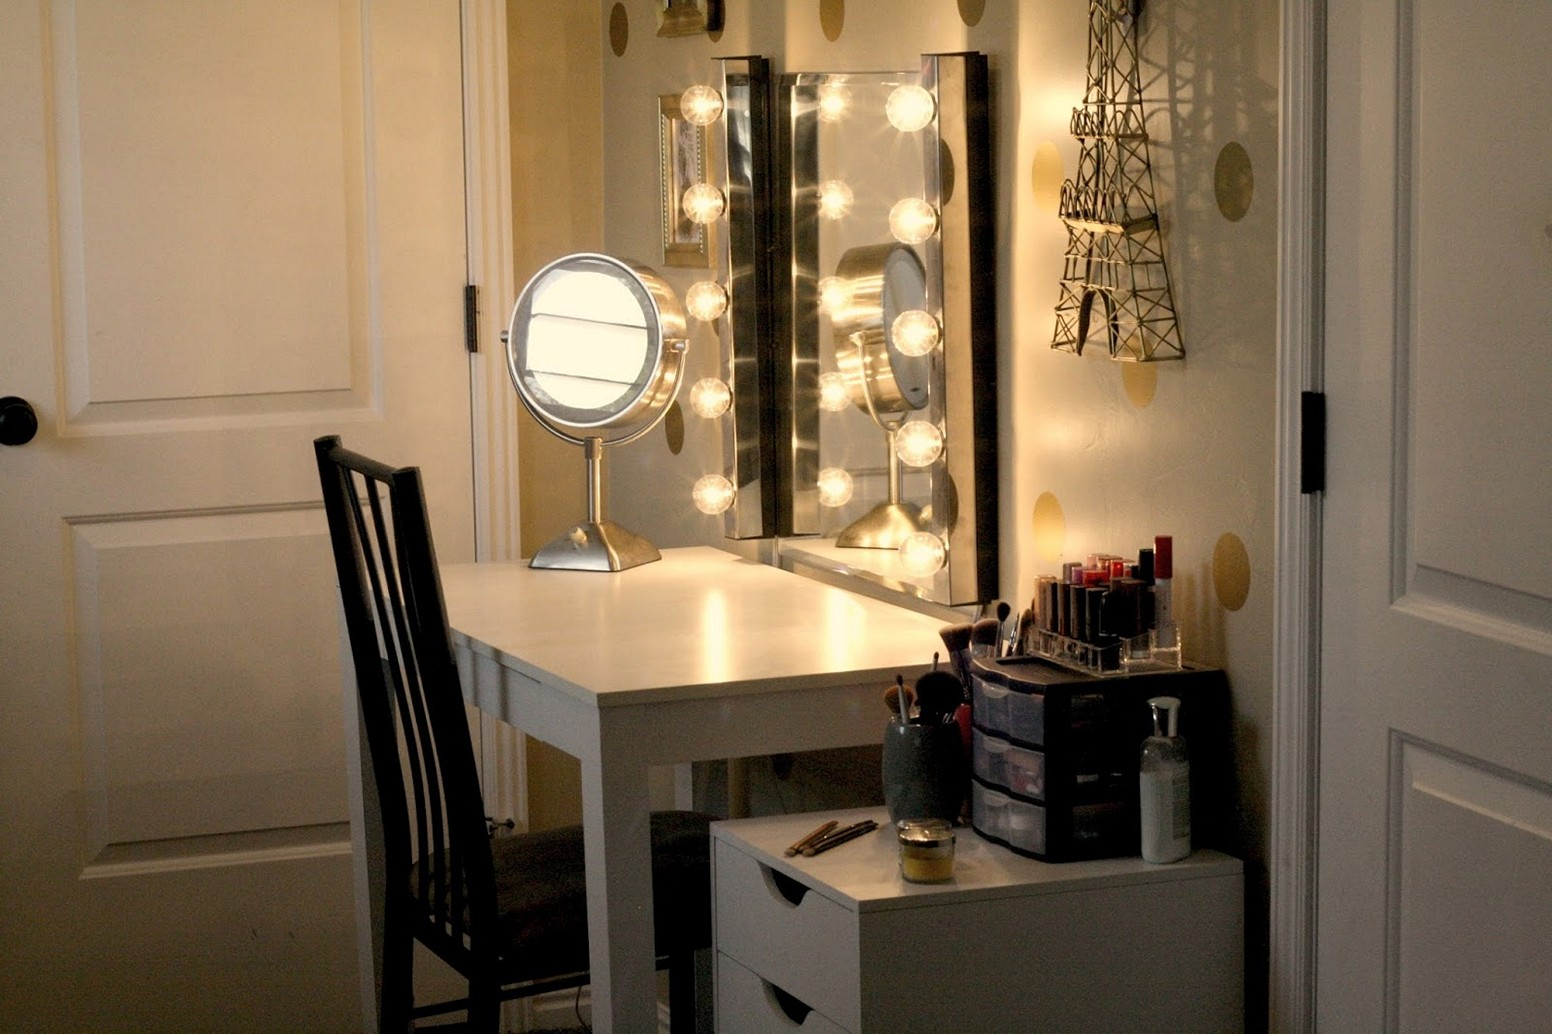 Picture of: Hollywood Vanity Mirror with Light Bulbs